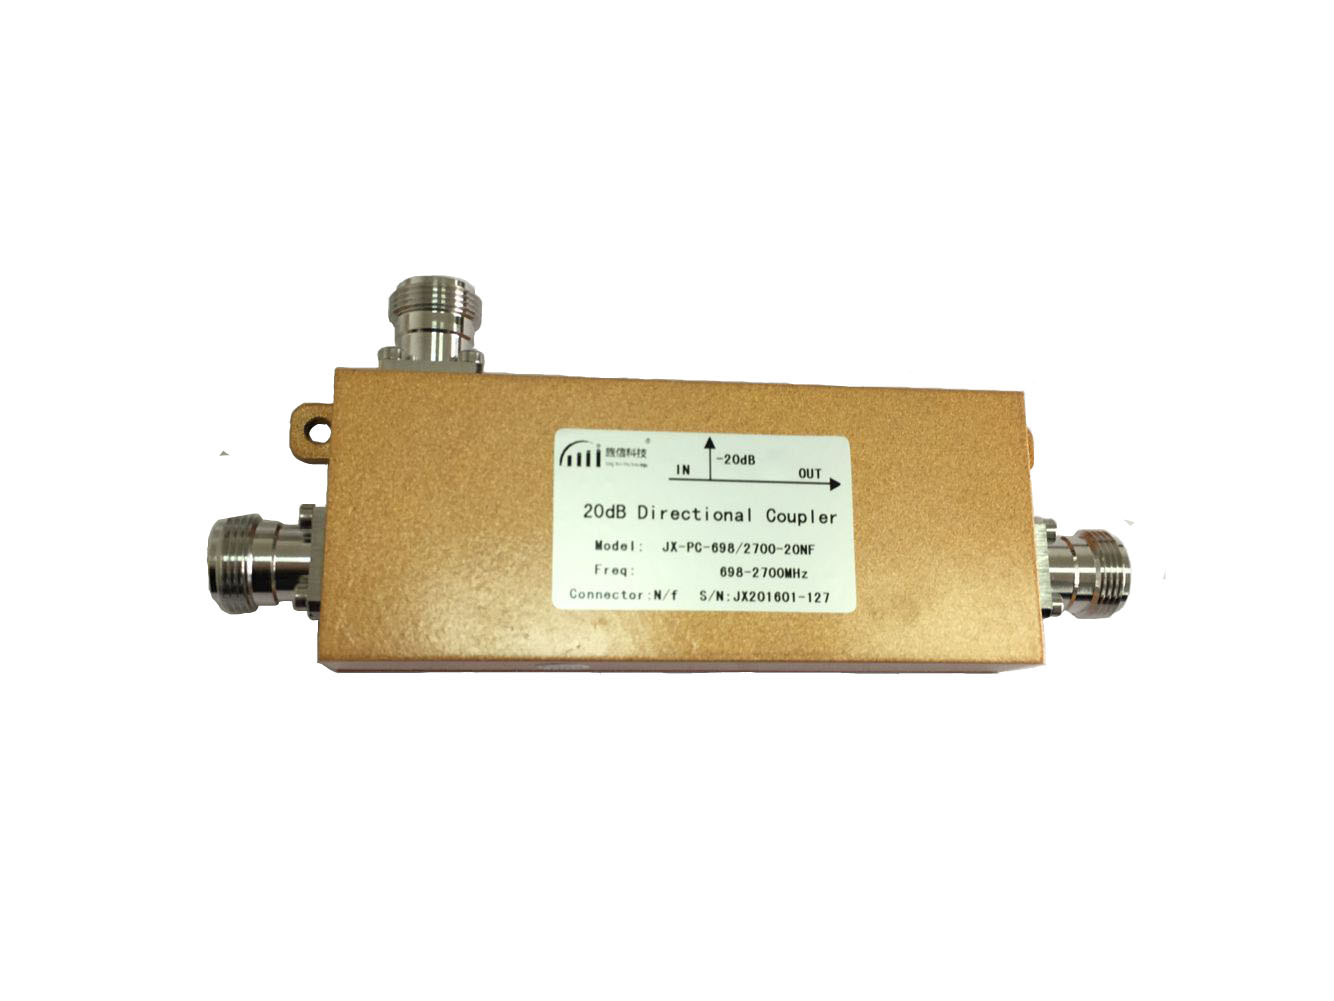 698-2700MHz 20dB Directional Coupler